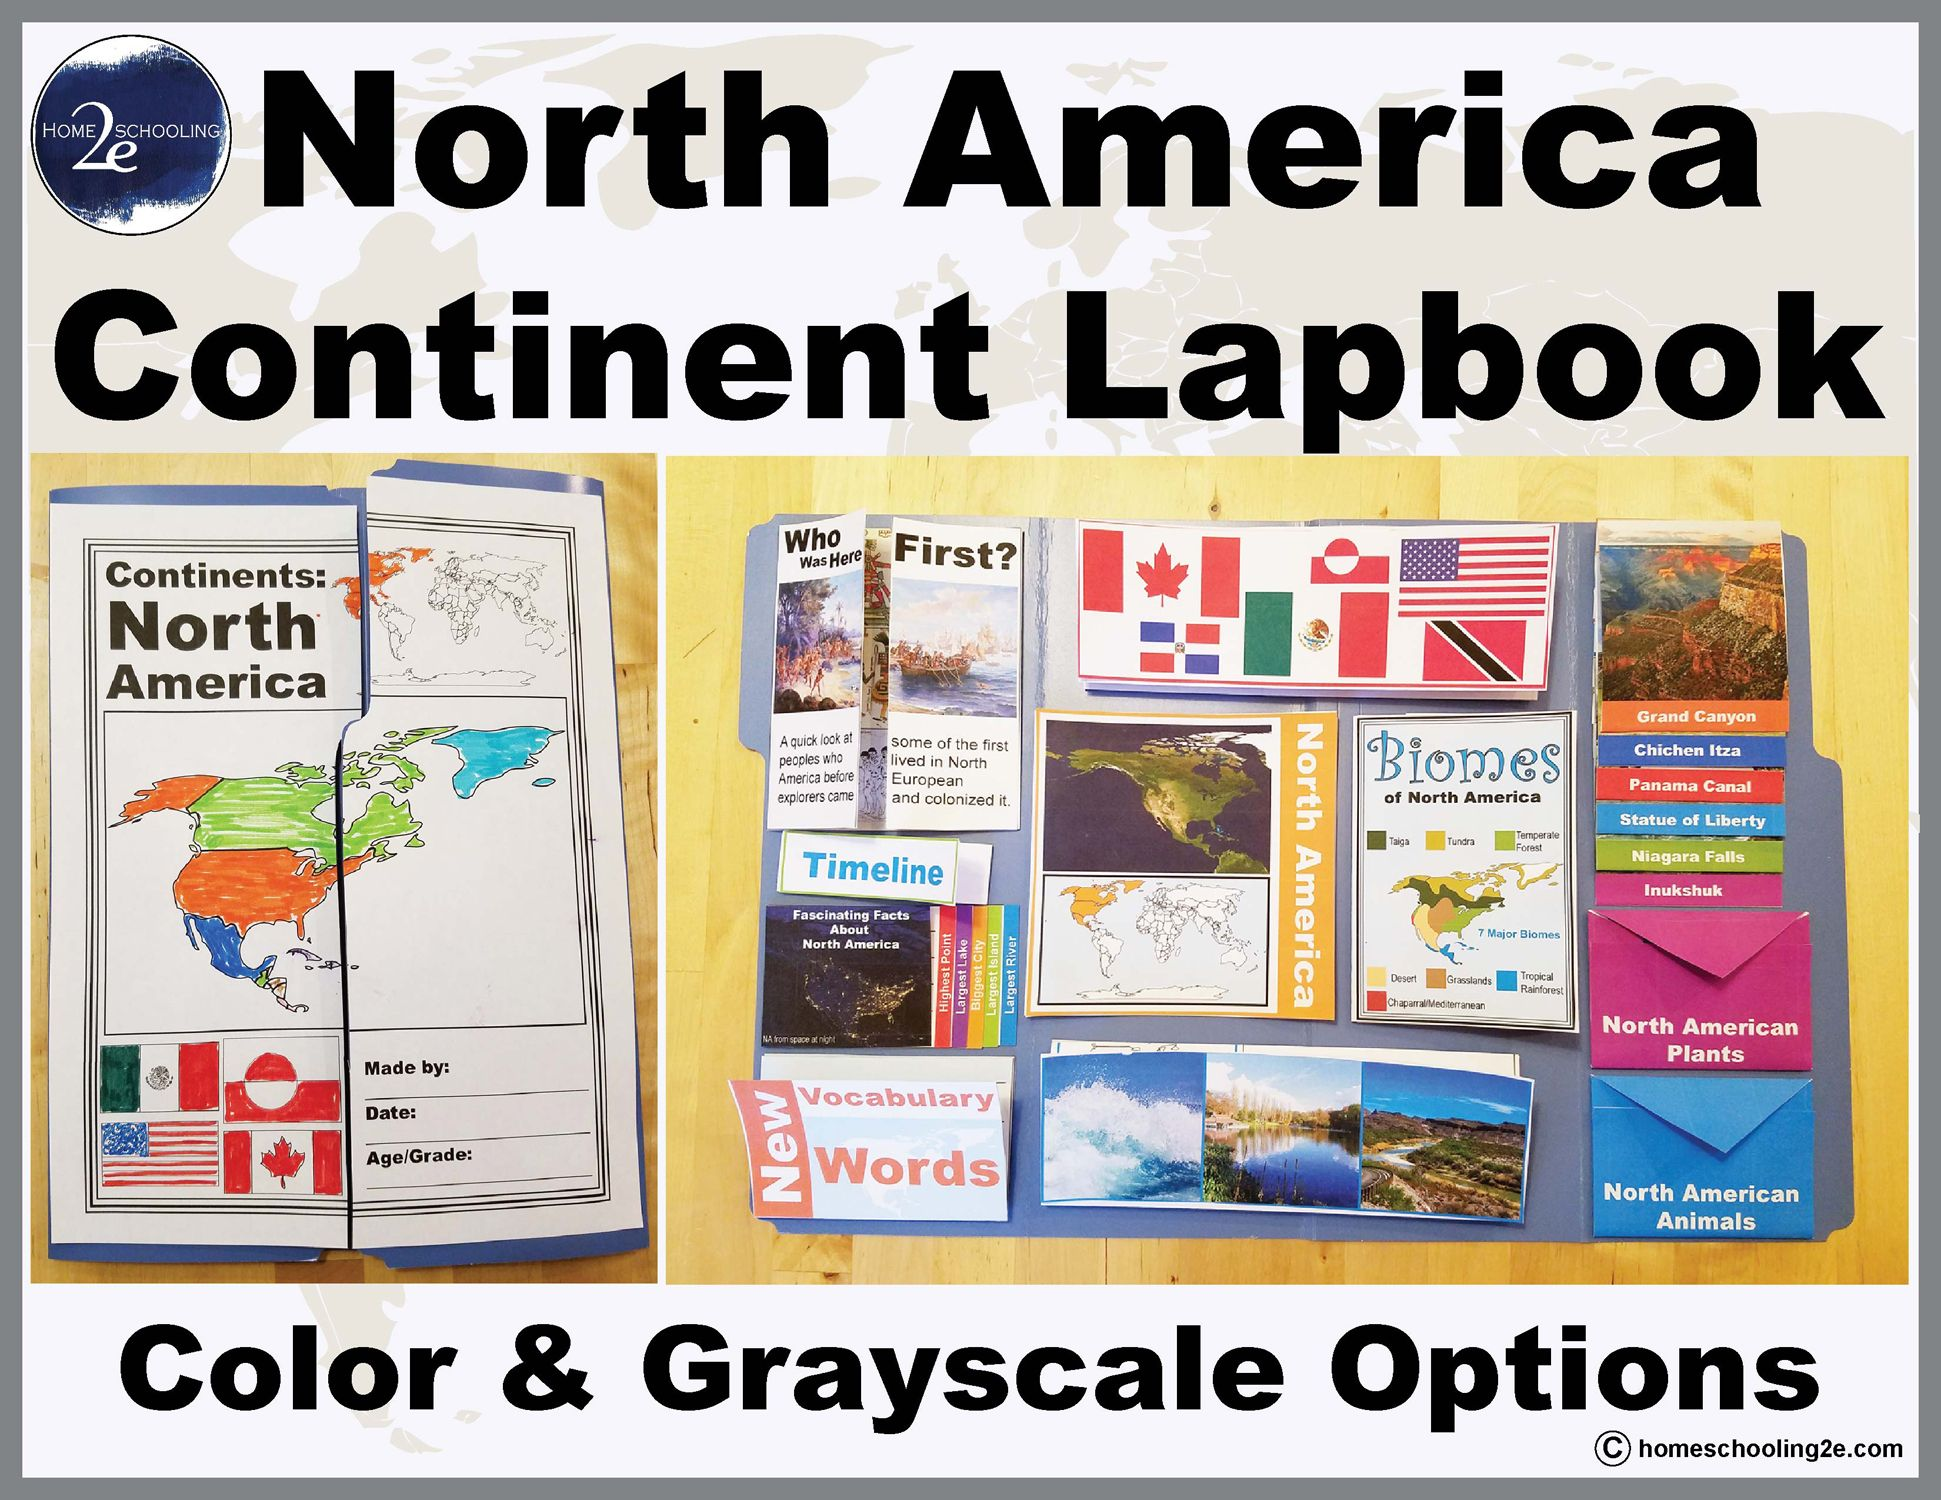 The North America Continent Lapbook teaches about